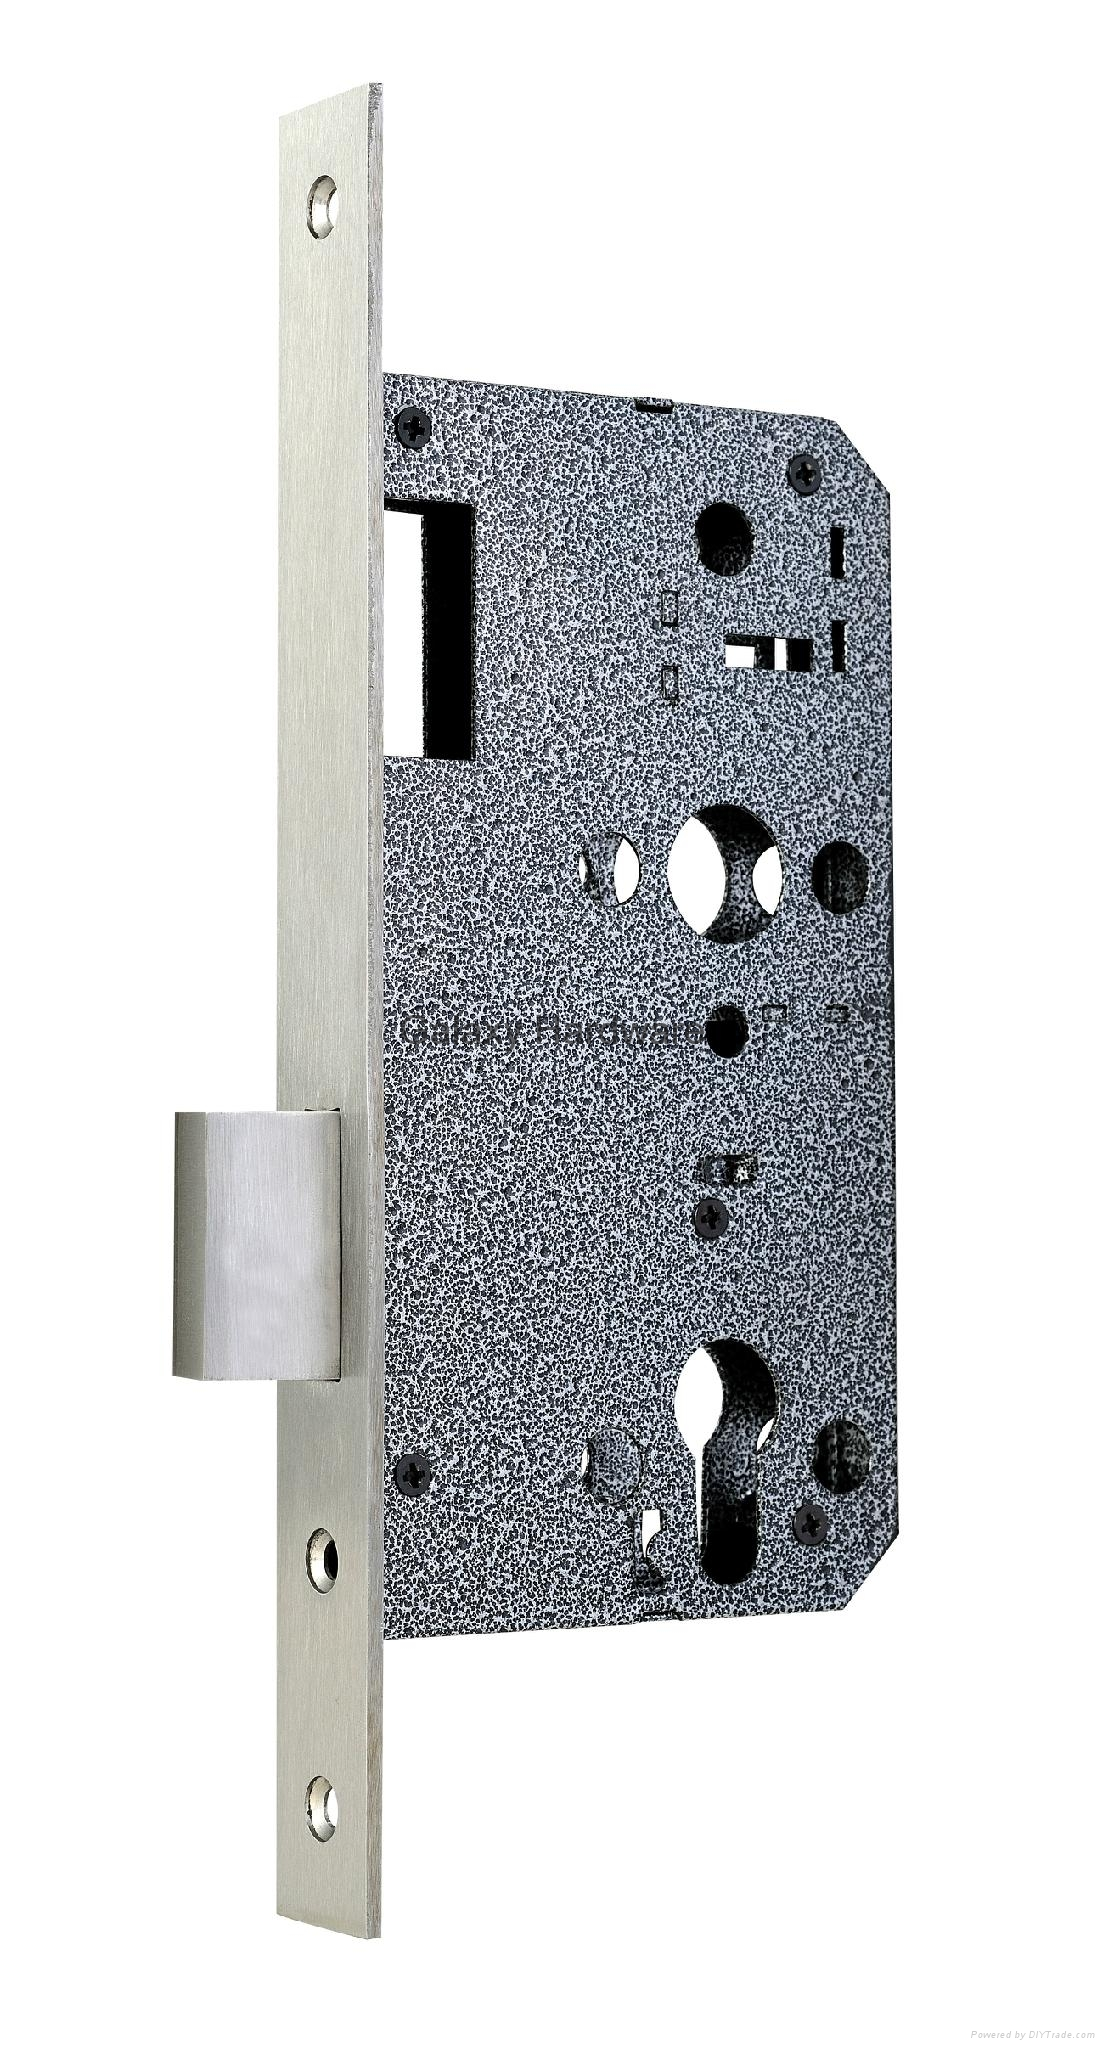 Dead Lock, Euro Profile Mortise Type, Item:6072D 1